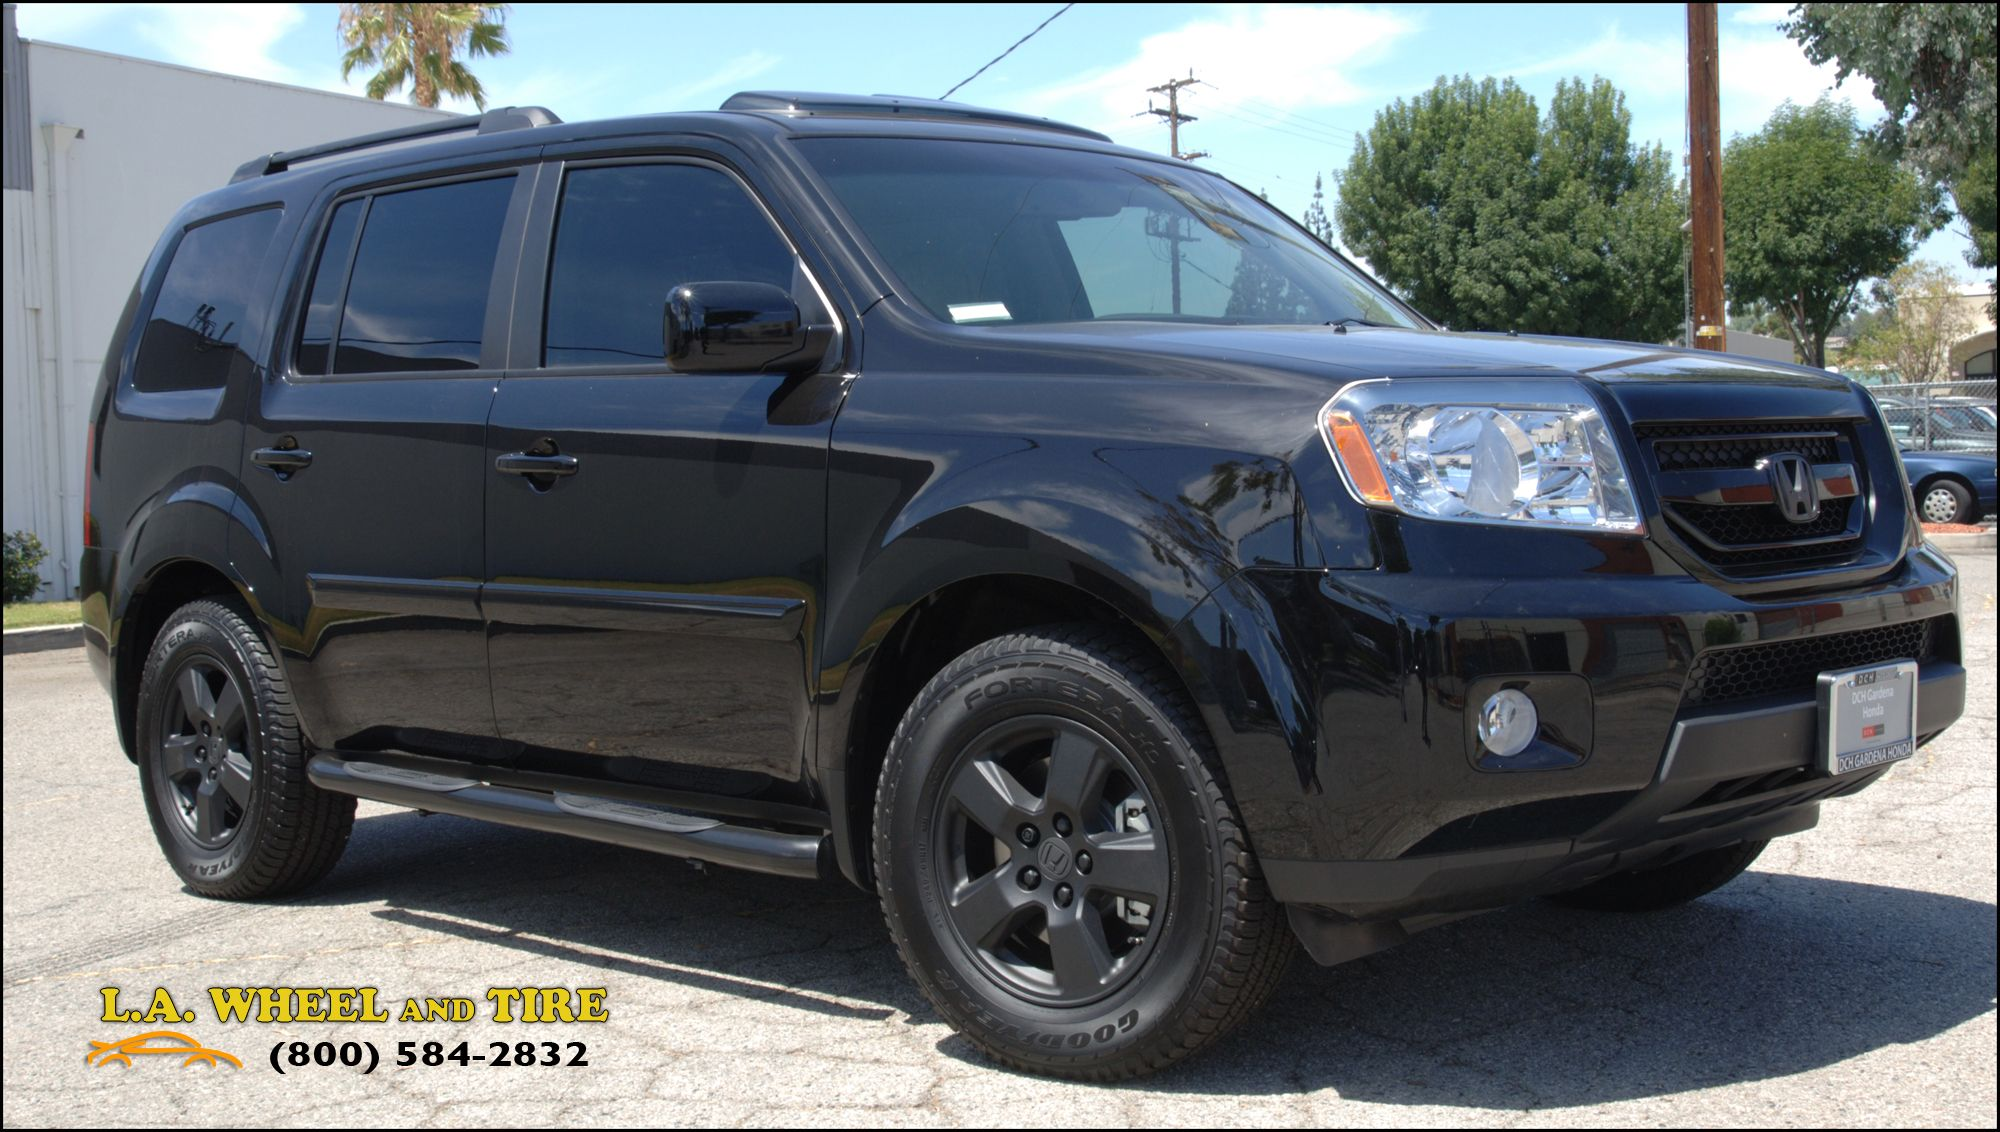 Blackedout honda pilot..will be doing this on parts of my